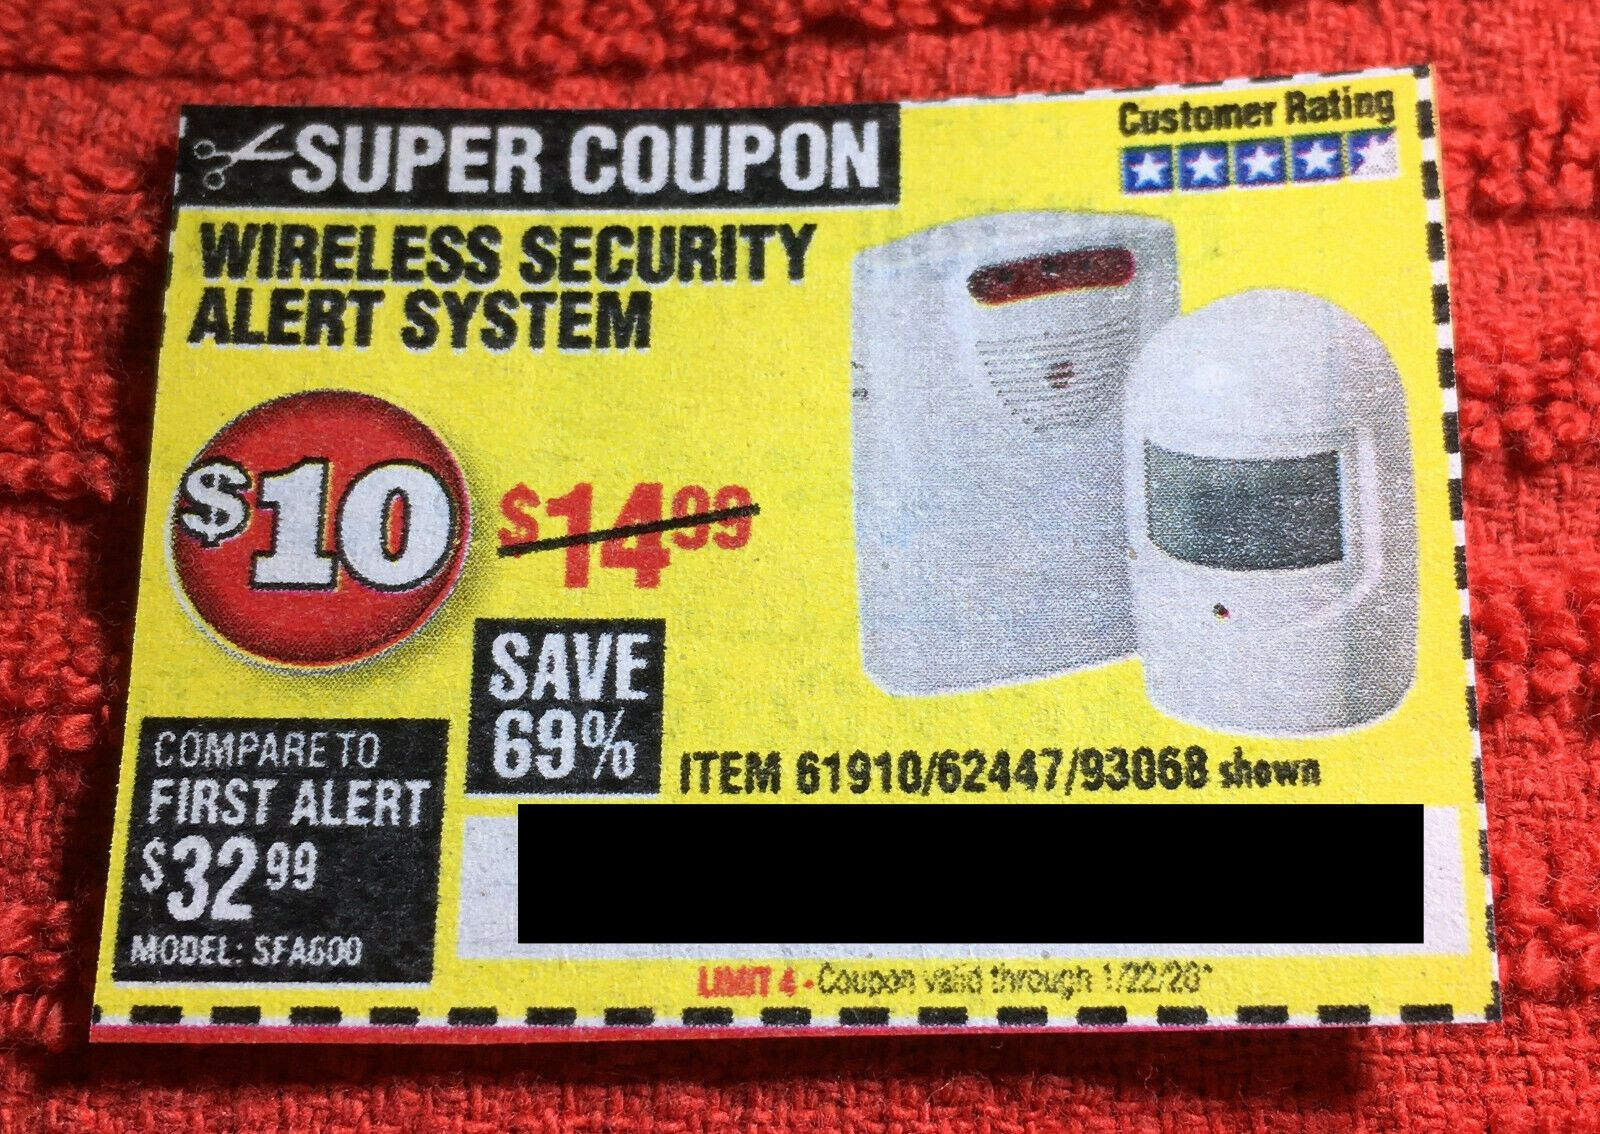 Coupon to save on Wireless Security Alert System